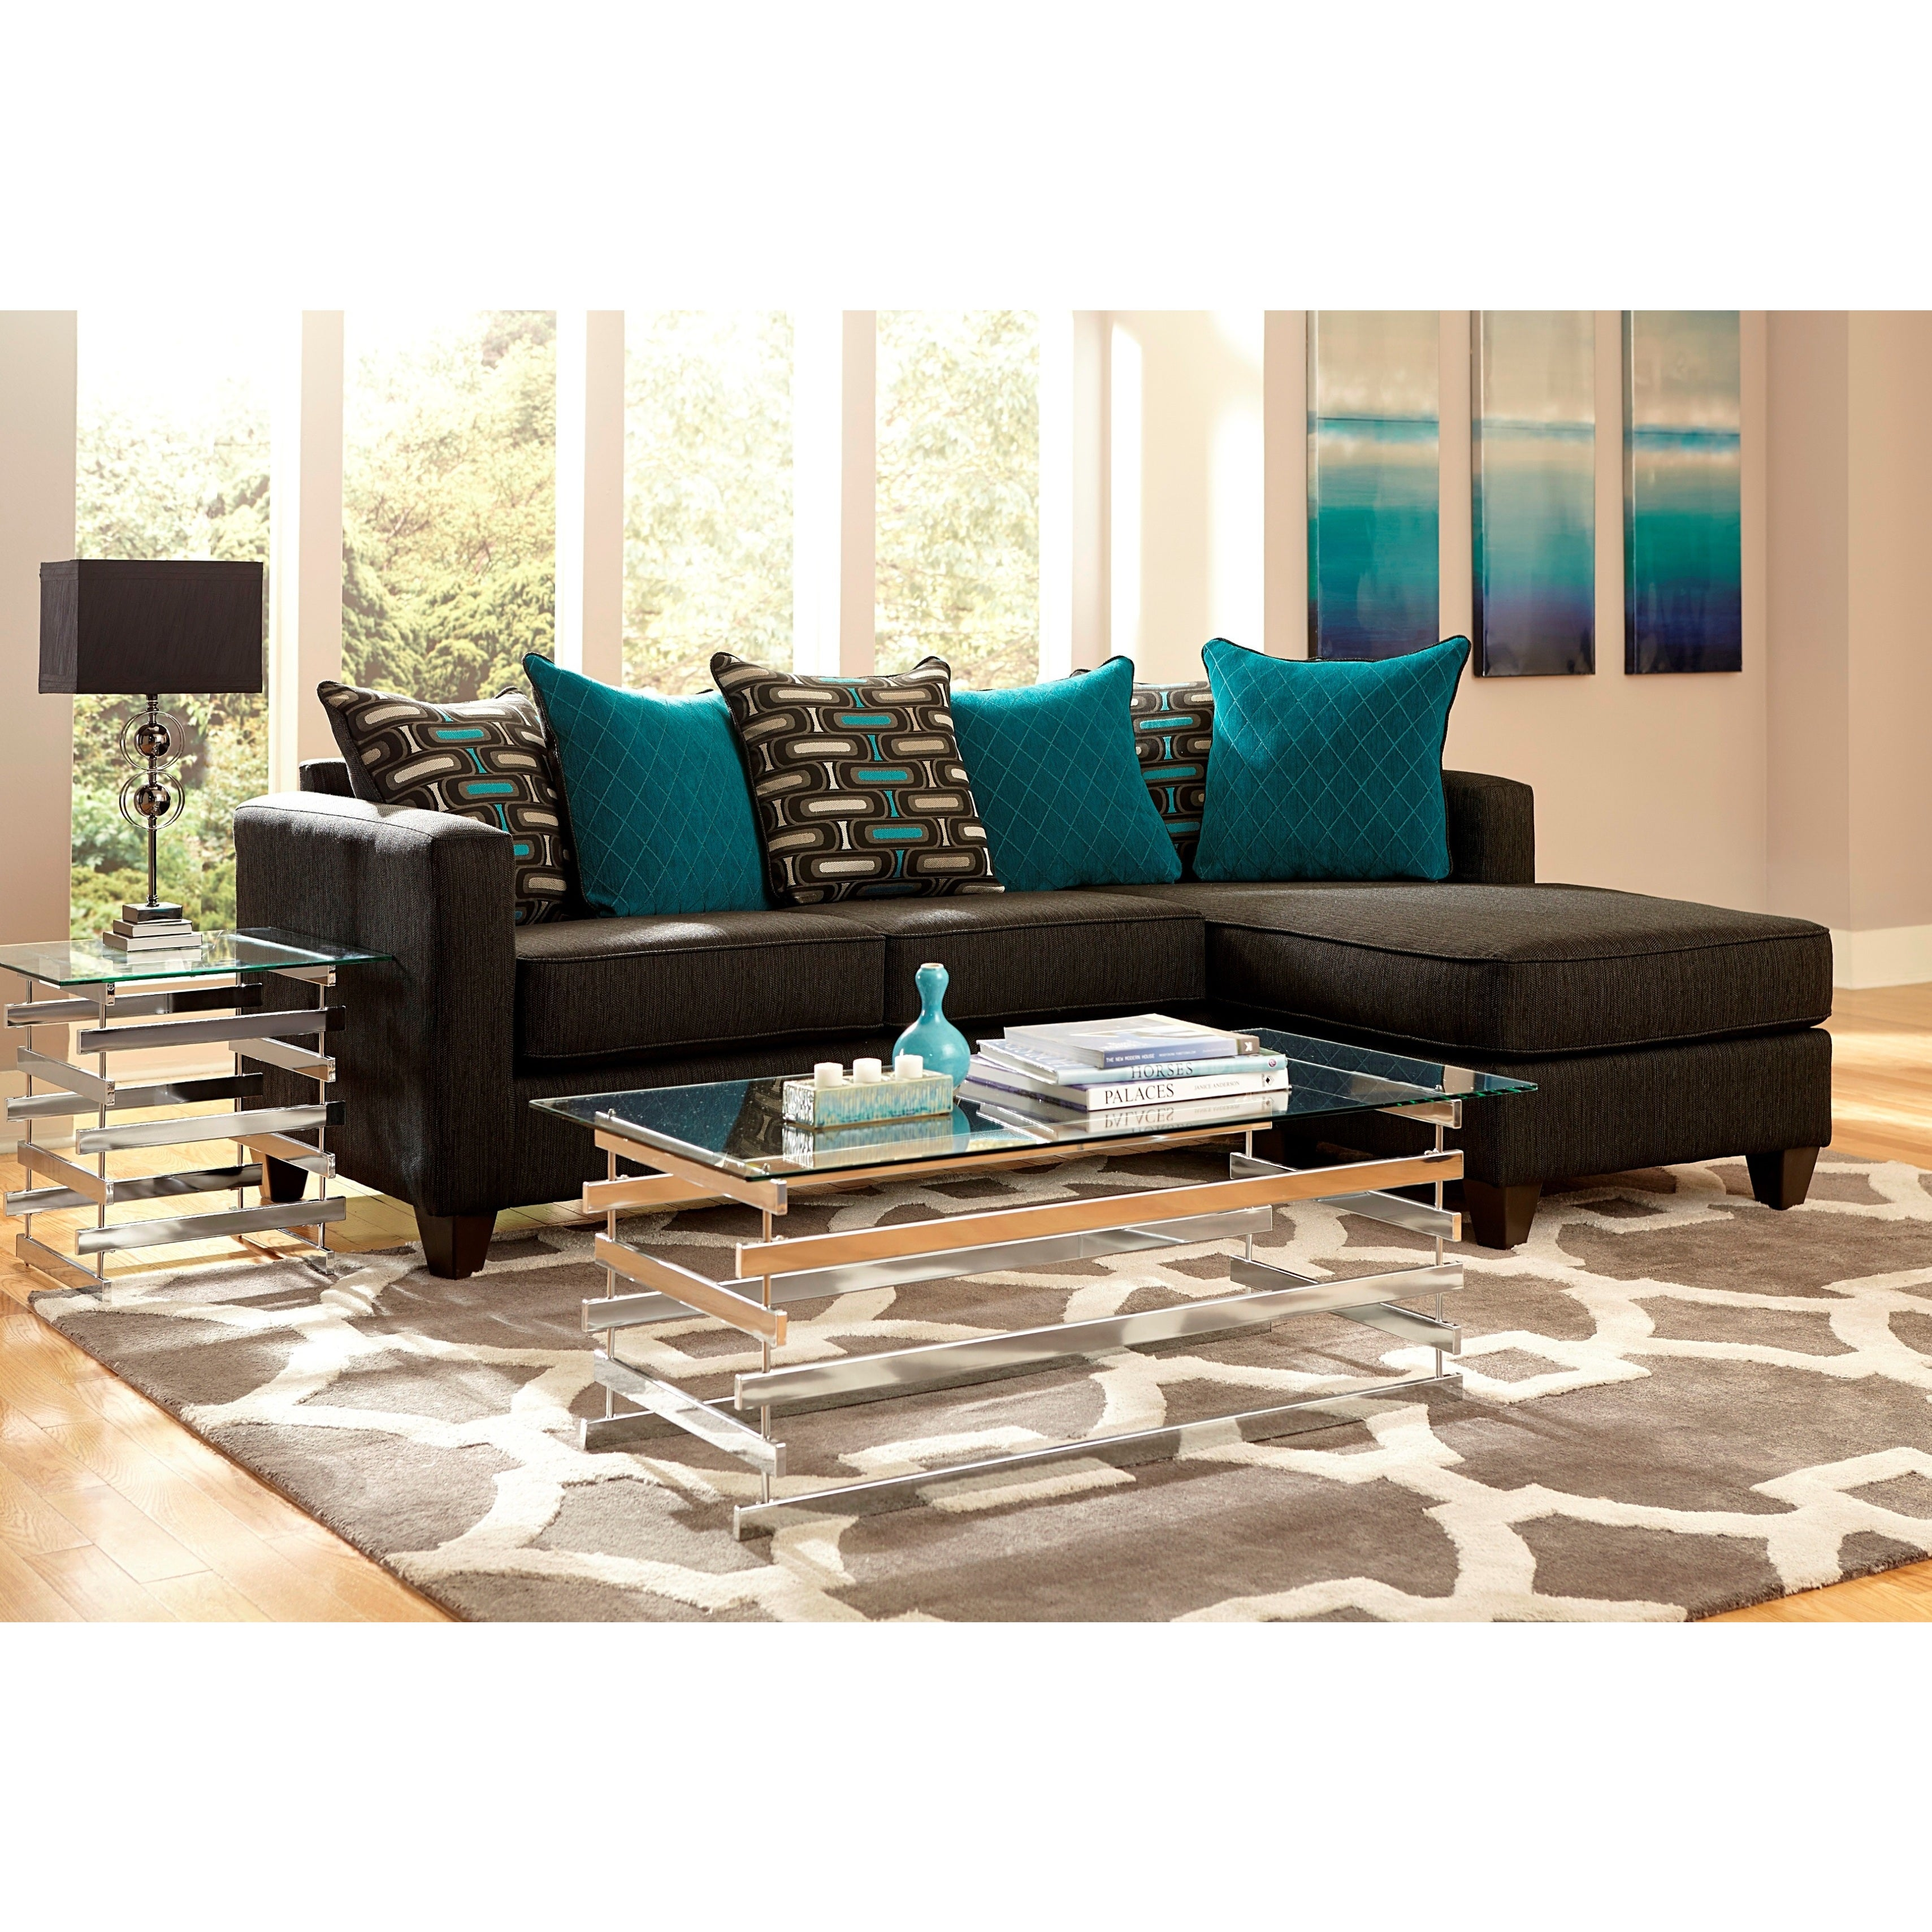 2-piece Charcoal Black Chenille Reversible Chaise Section...